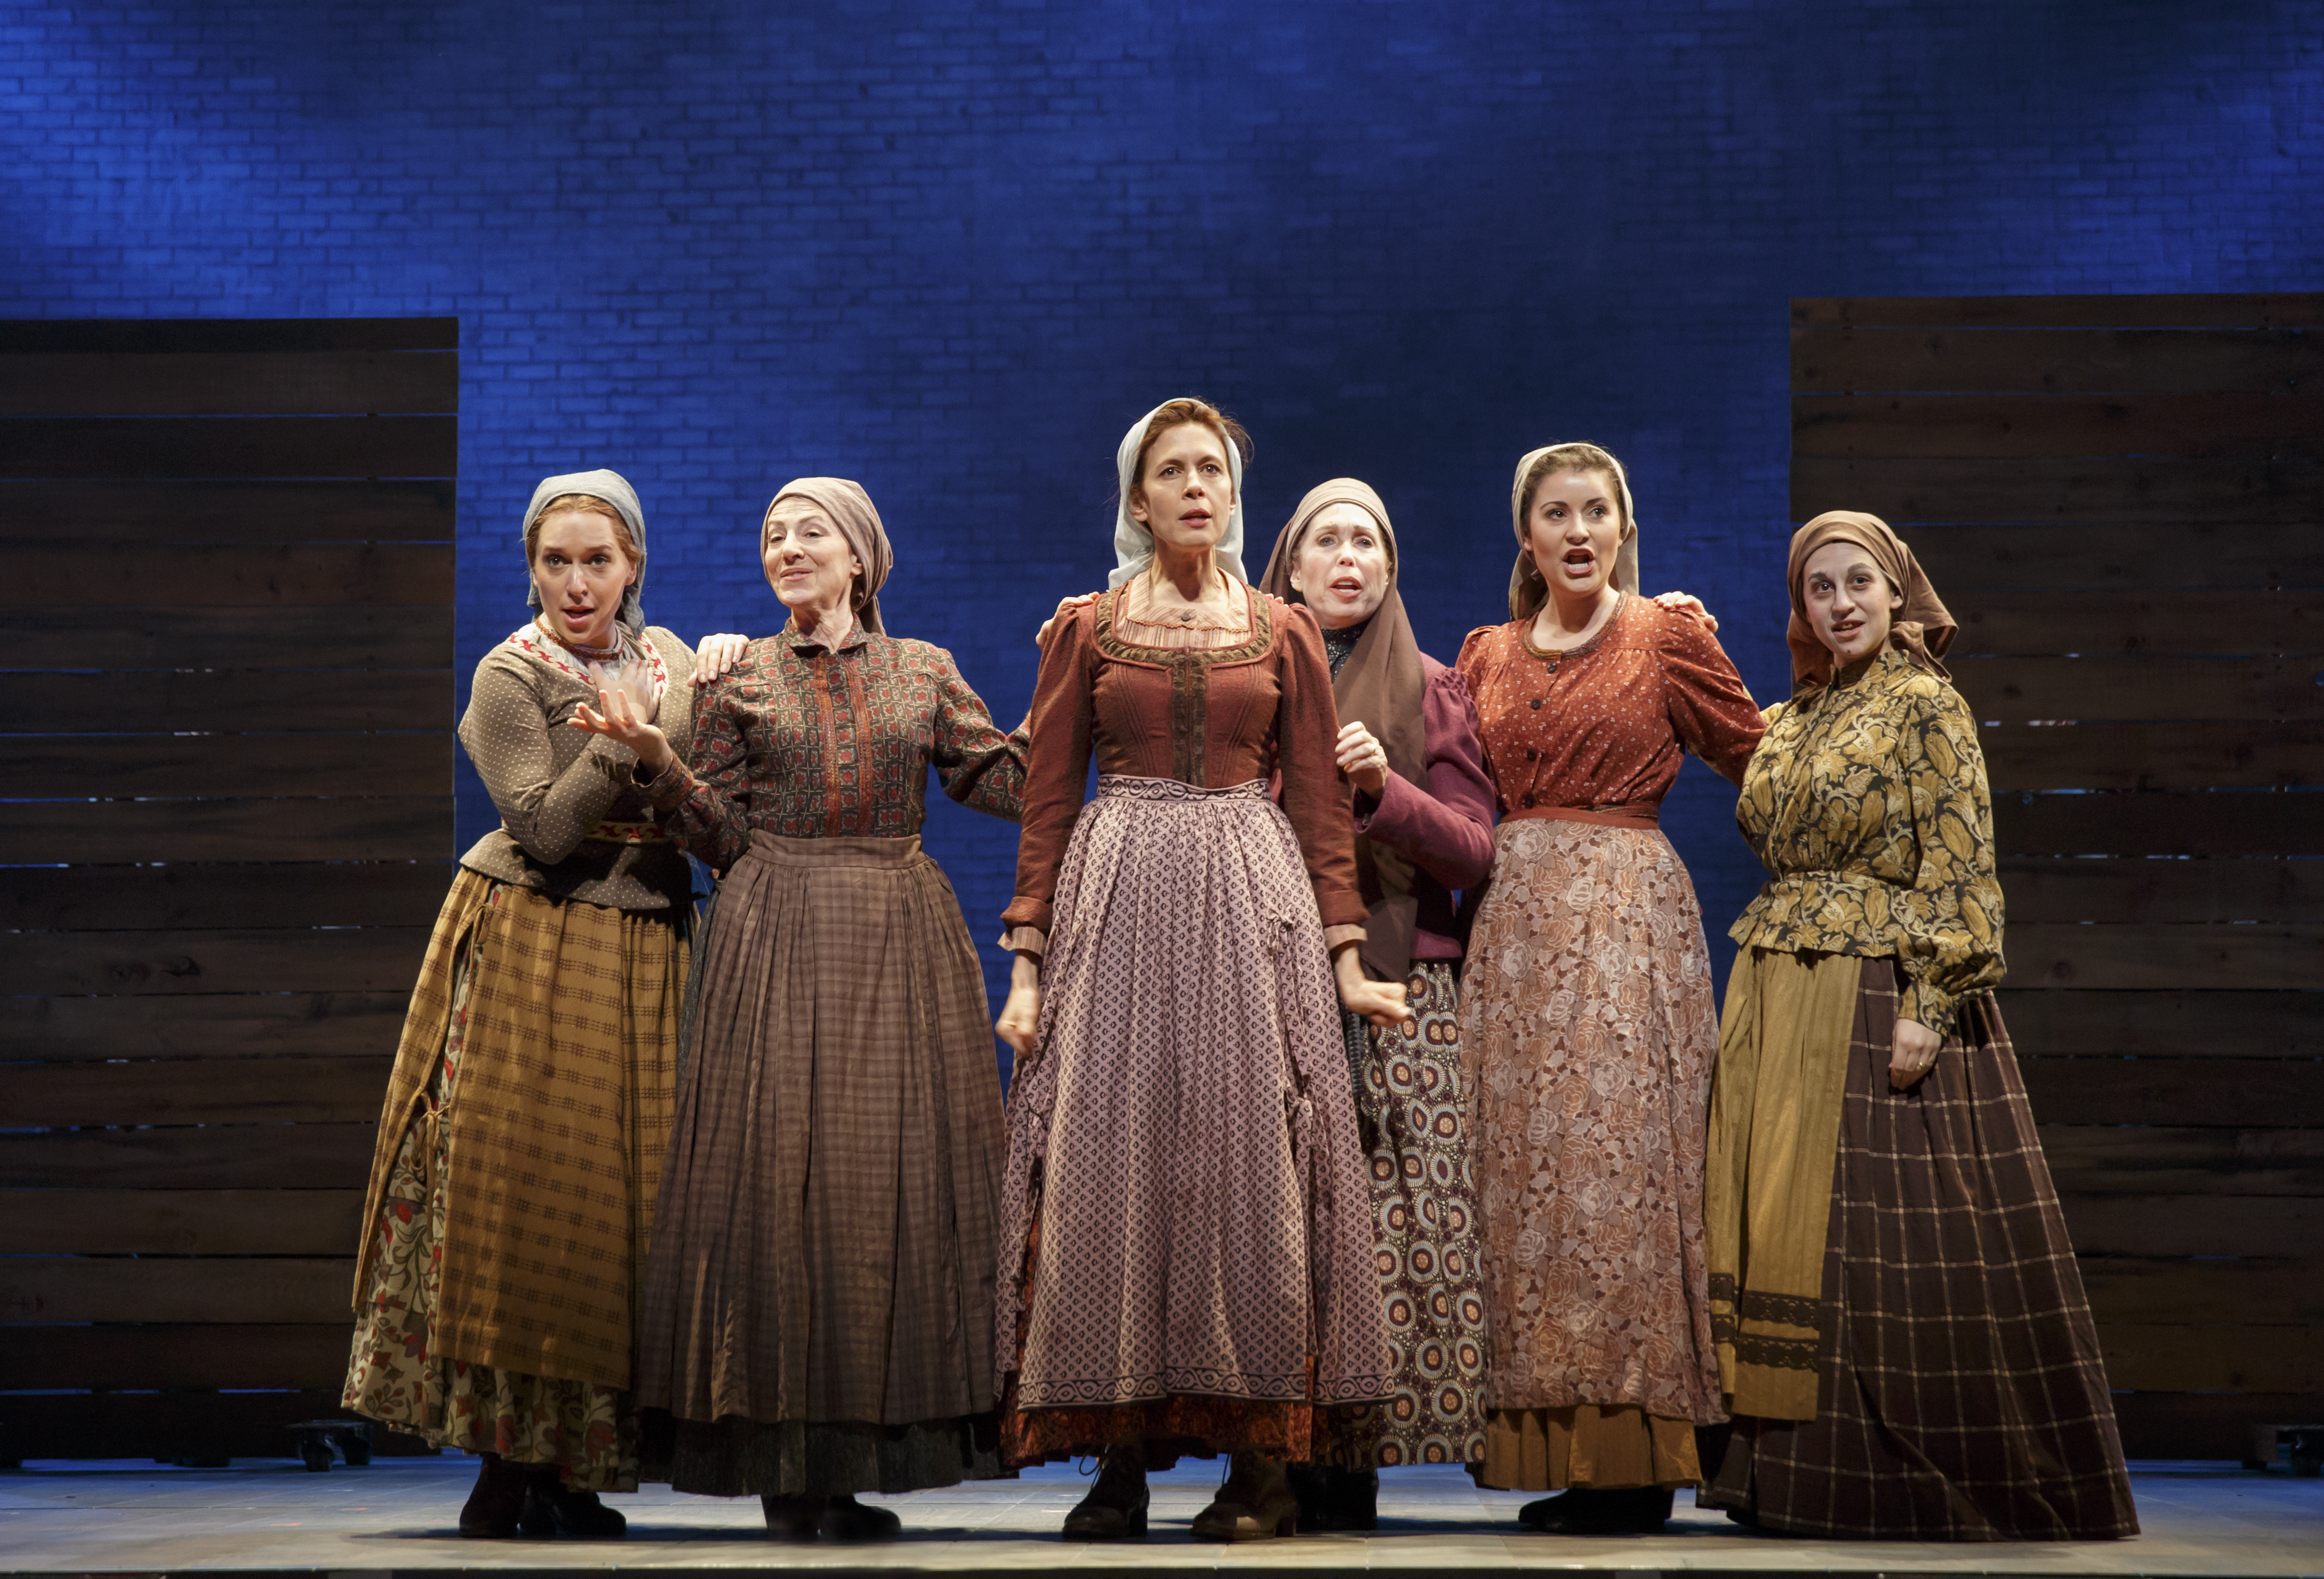 Jessica Hecht As Golde, Center, With The Wives Of Anatevka